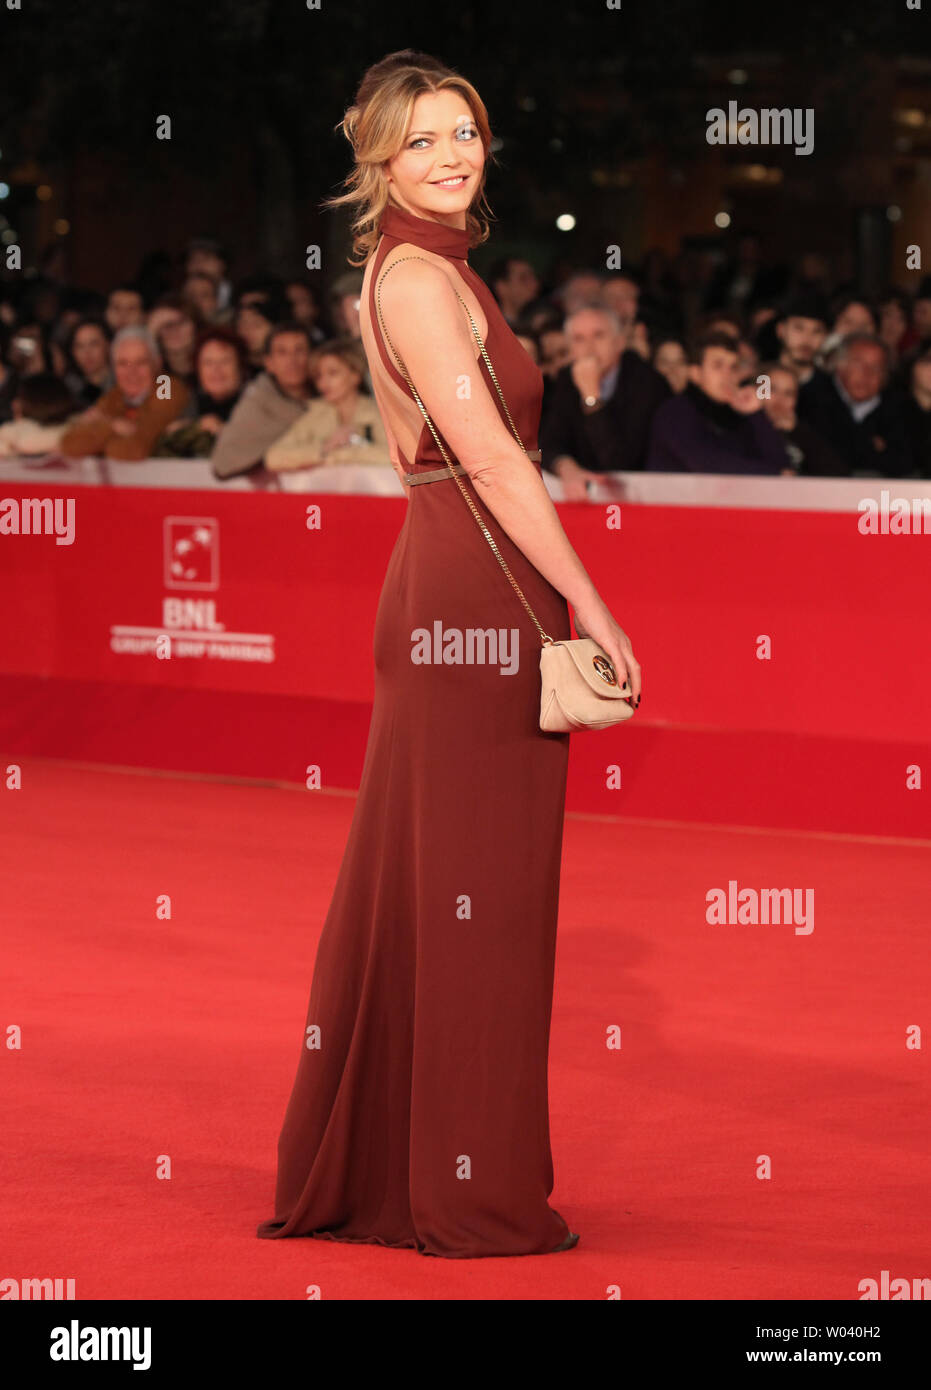 Vittoria Belvedere arrives on the red carpet before the screening of a digitally restored version of the 1960 classic film 'La Dolce Vita' during the 5th Rome International Film Festival in Rome on October 30, 2010.   UPI/David Silpa - Stock Image